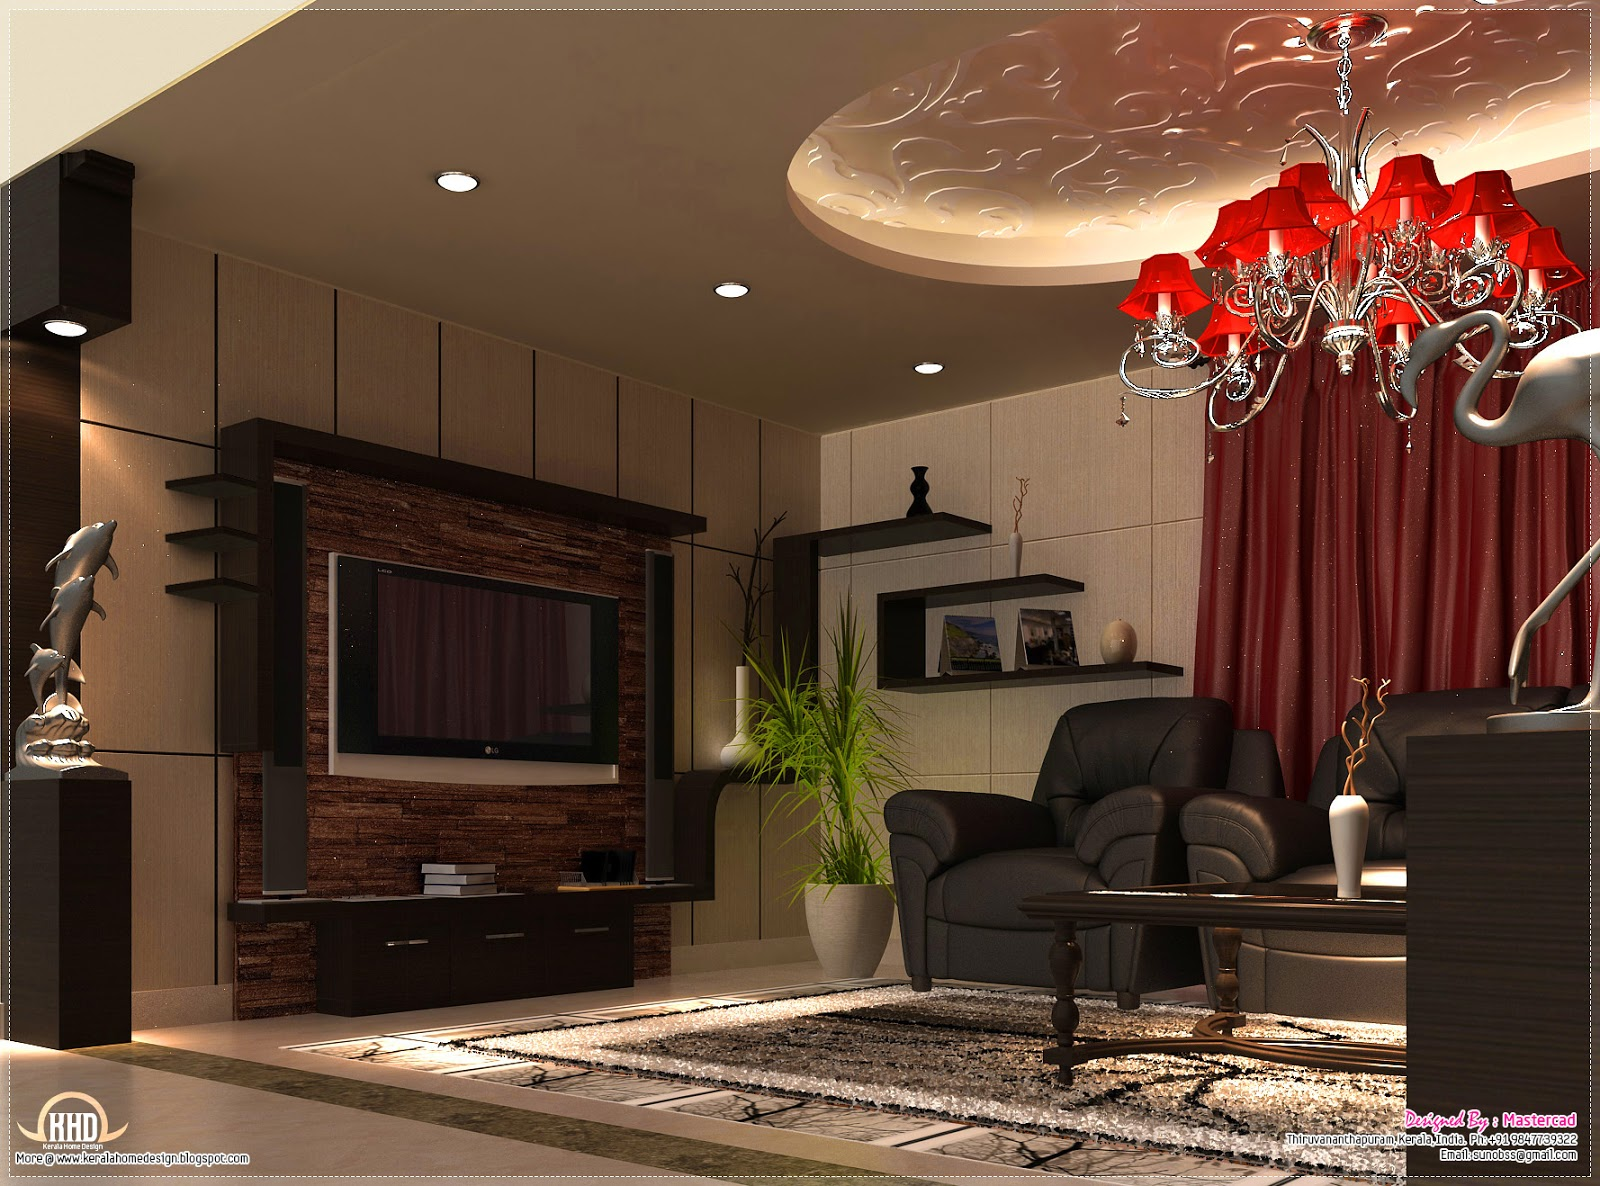 Interior design ideas kerala home design and floor plans for House design photos interior design